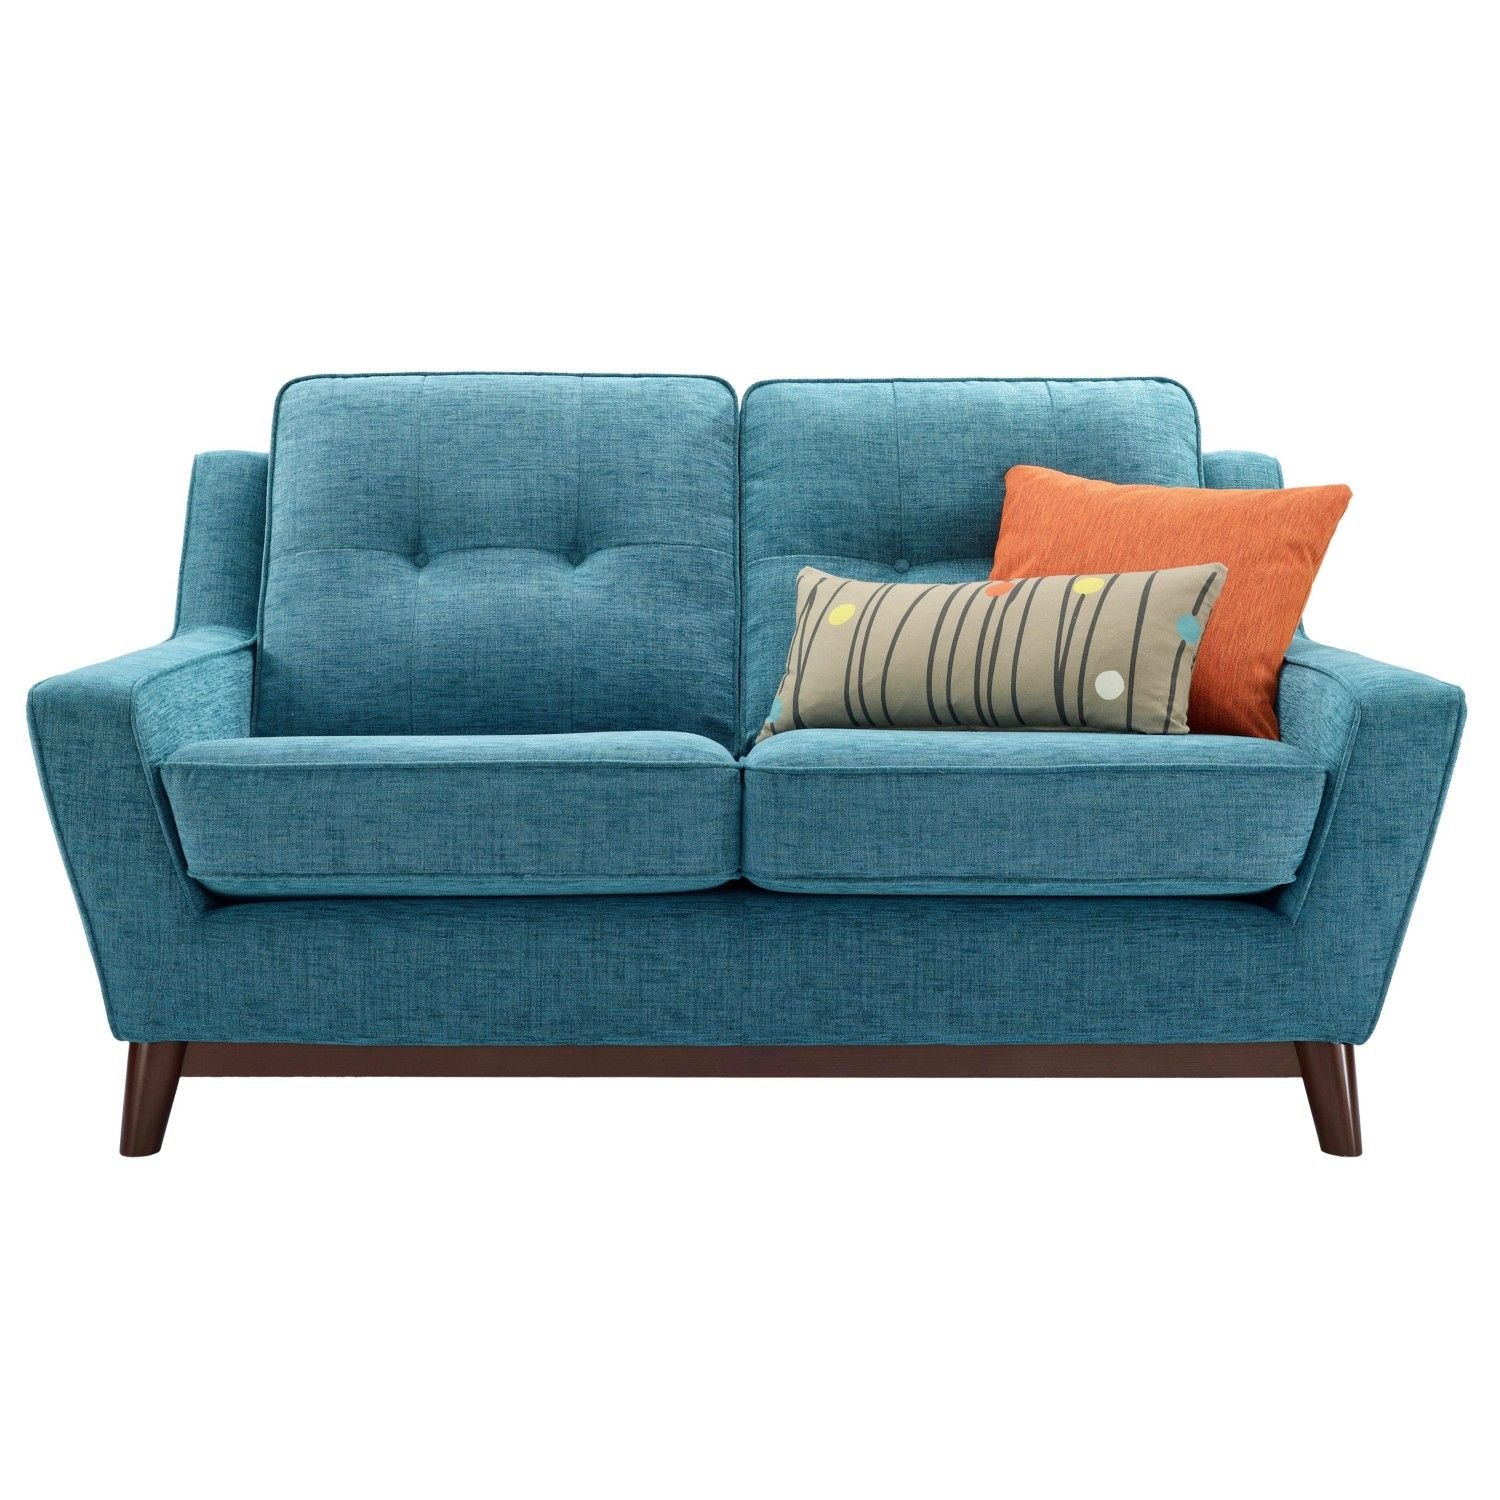 Light Blue Sofa Full Size Sofas Centerblue Leather Sofa Fabric